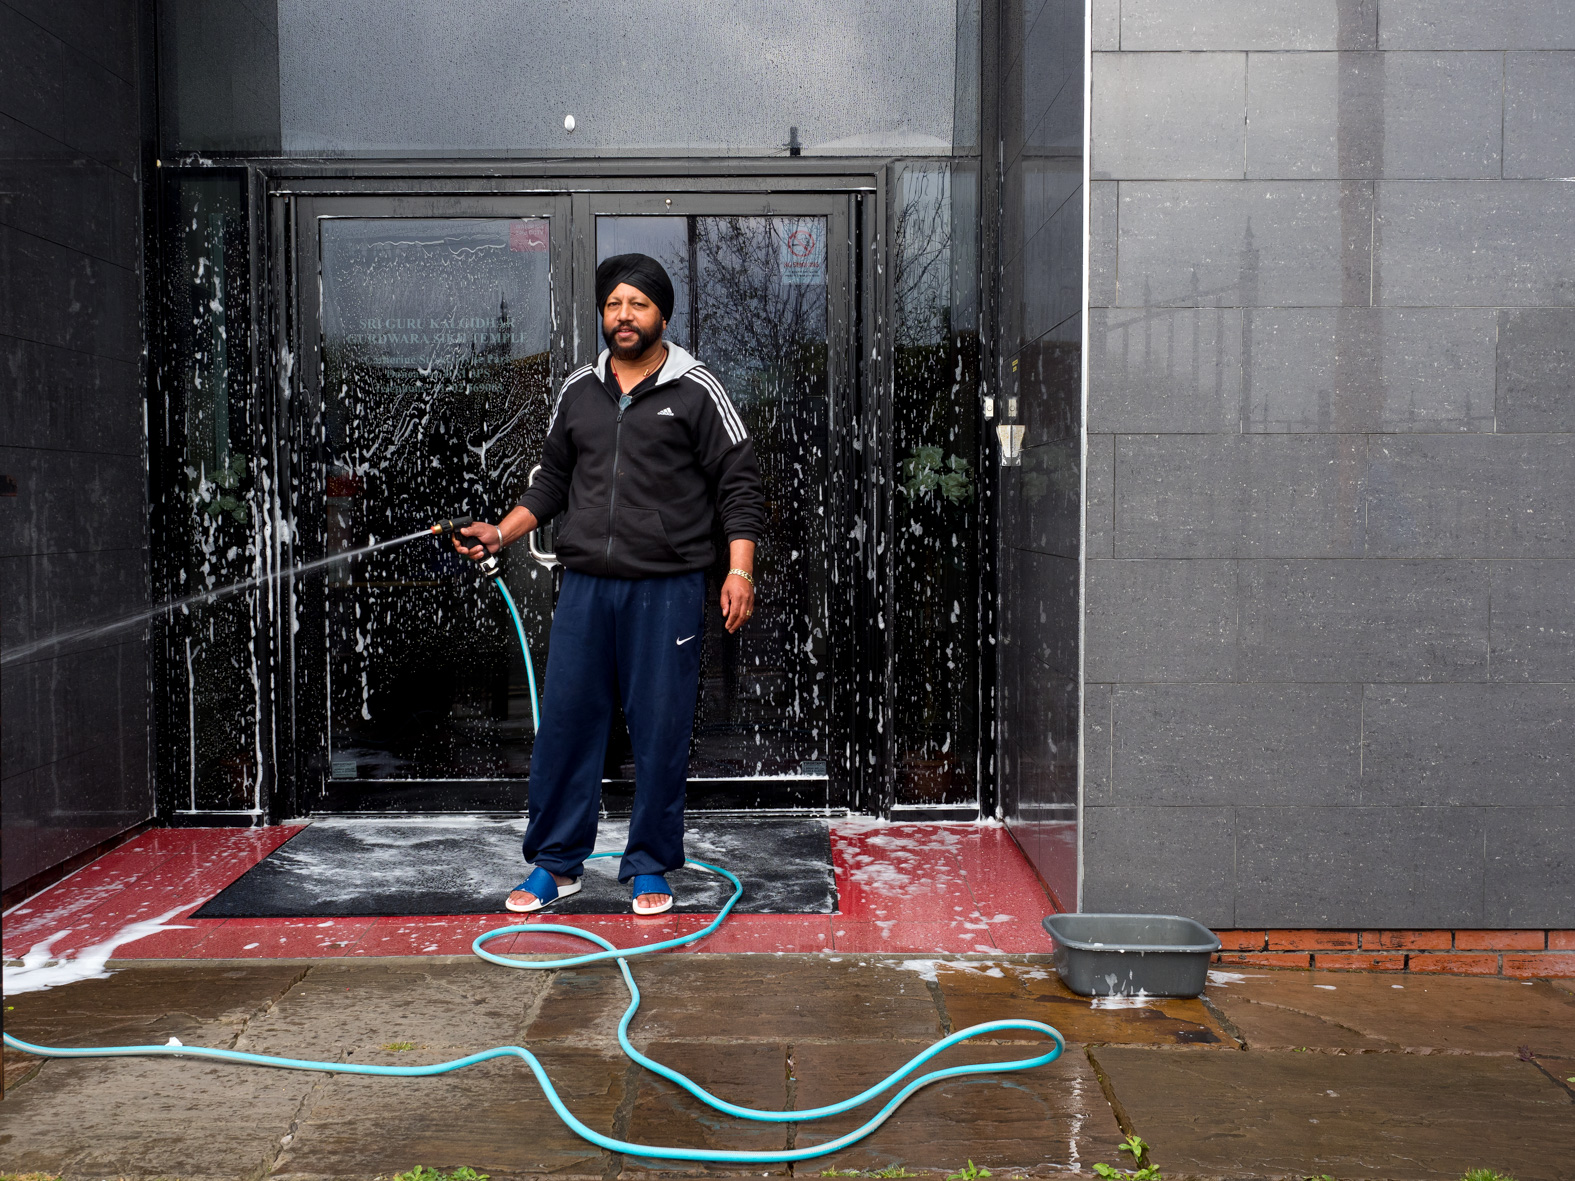 56 year old Sikh, Vaz, hoses down the entrance of Sri Guru Kalgidhar Gurdwara before worshippers arrive on a Sunday. Doncaster, South Yorkshire.